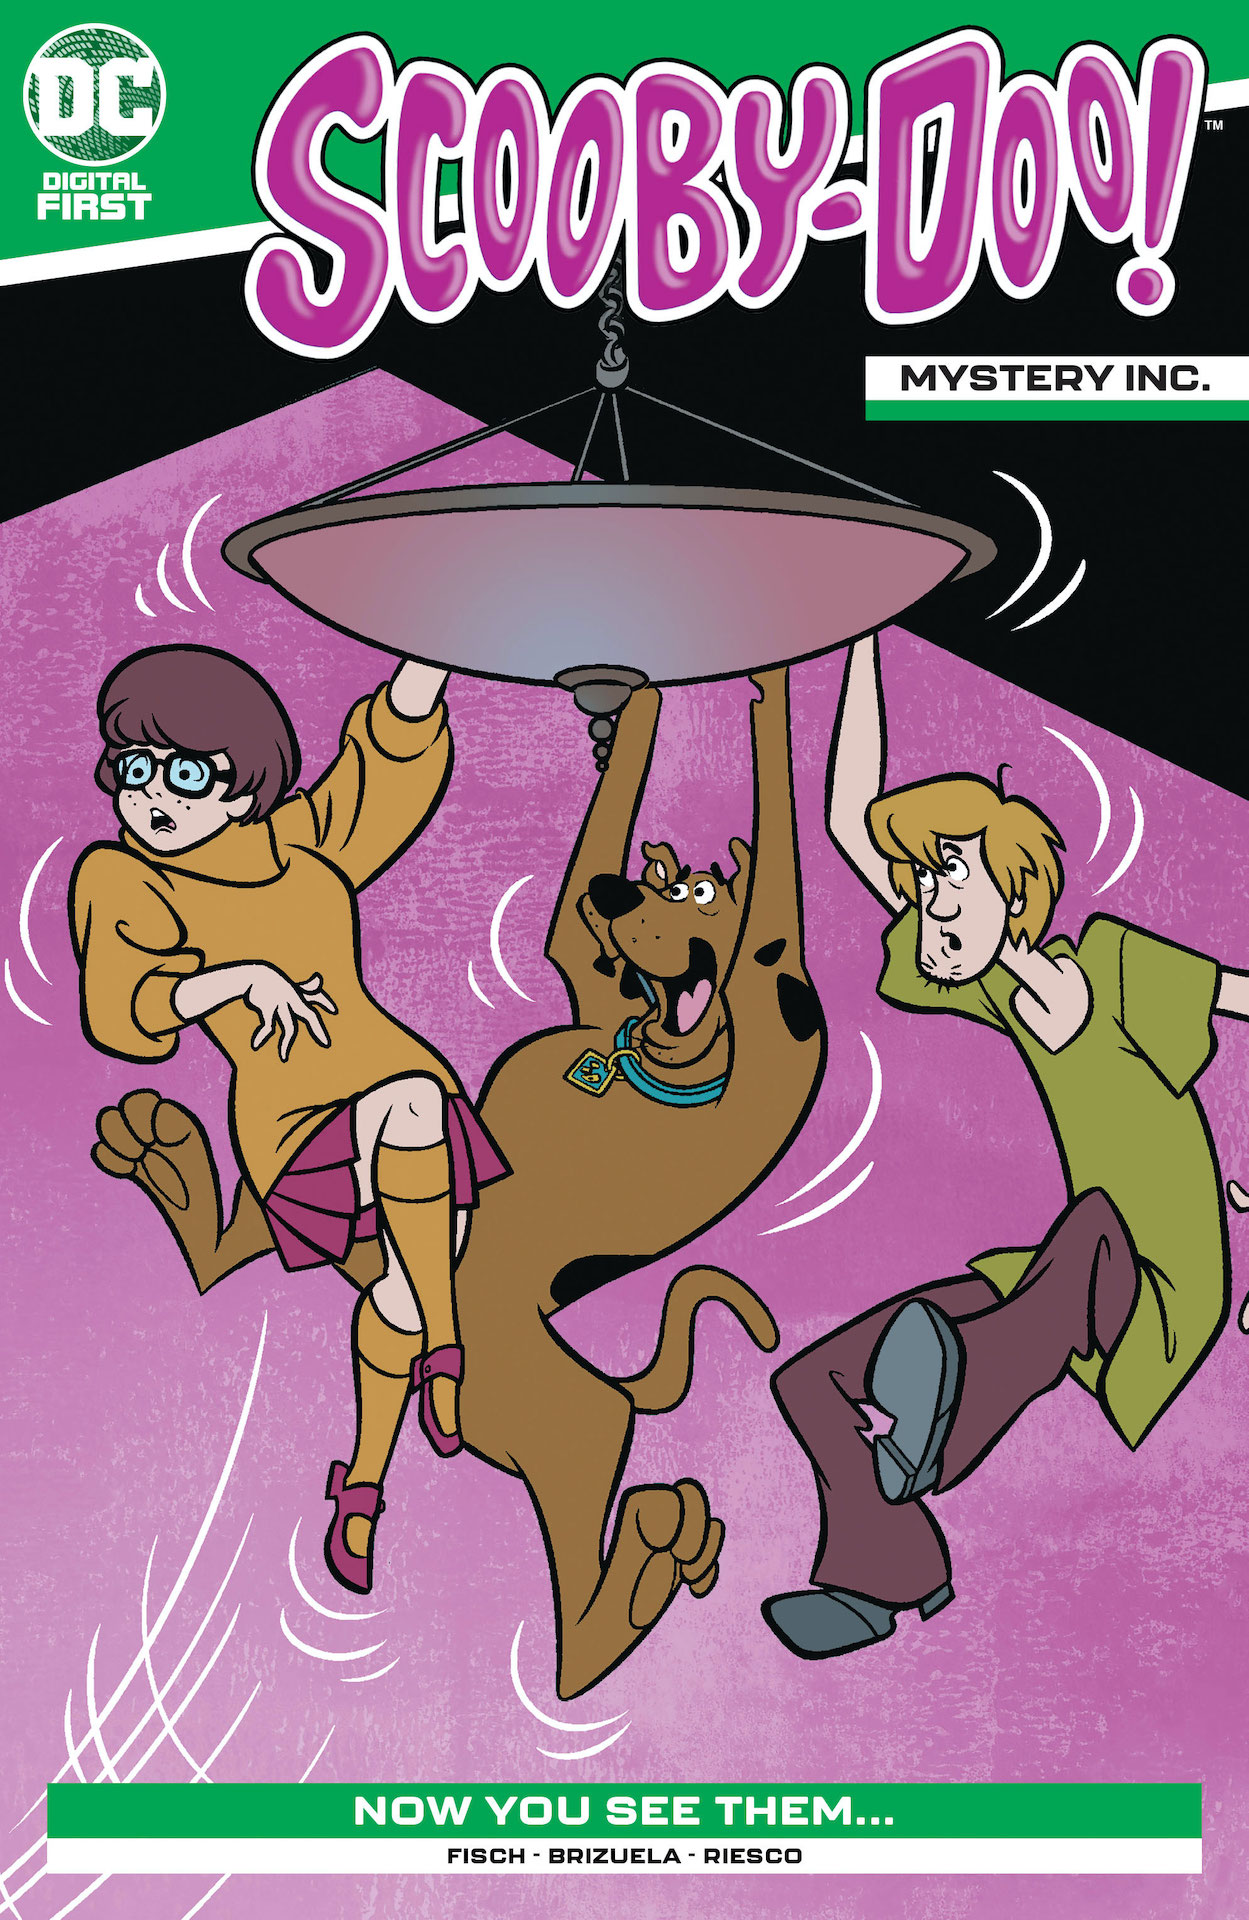 One by one, the members of the Scooby gang are disappearing! Can Scooby solve the mystery alone?